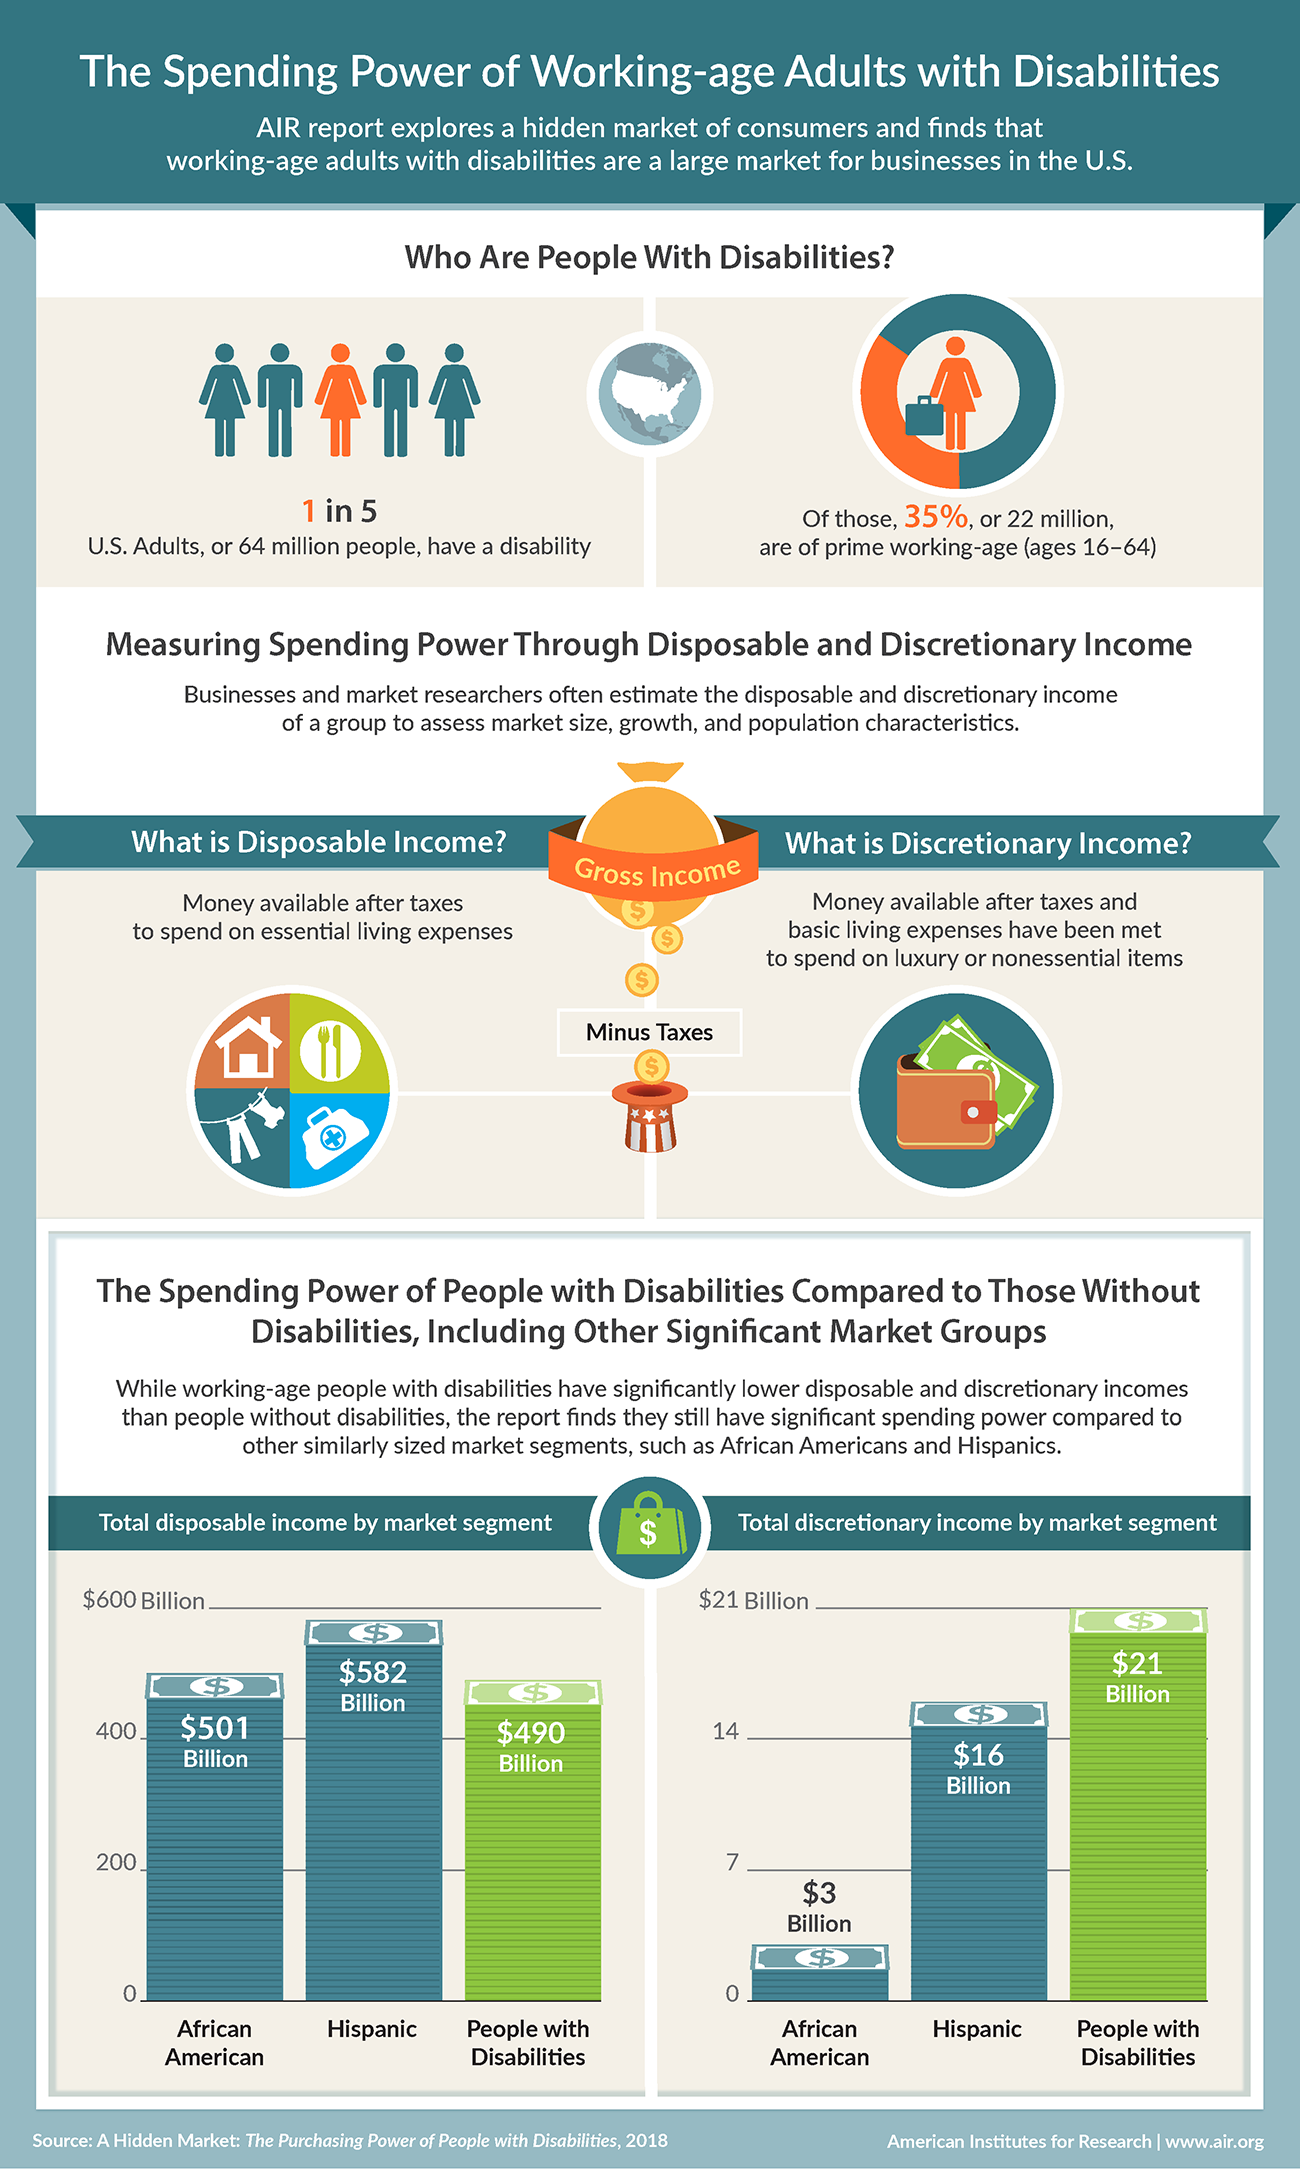 The Spending Power of Working-age Adults with Disabilities An infographic in three sections depicts the spending power of working-age adults with disabilities, who represent a large market for businesses in the United States. The top section has two panels that answers the question: Who are people with disabilities in the United States? The first panel, on the left, depicts five icon images of three women and two men. One of the icons is highlighted. This represents the fact that one in five adults in the United States, or 64 million people, have a disability. The second panel, on the right, depicts an icon image of a person carrying a briefcase. This represents the fact that of the 64 million people with a disability, 22 million, or 35 percent, of them are of prime working age, meaning that they are from ages 16 through 64.  The middle section of the infographic defines the two types of income: disposable and discretionary. A panel on the left defines disposable income as money available after taxes to spend on essential living expenses. Such expenses include housing, food, clothing, and medical costs, represented by images of a house, spoon and fork, clothes hanging on a line outdoors, and a doctor's briefcase. A panel on the right defines discretionary income as money available after taxes and basic living expenses have been met to spend on luxury or nonessential items. It depicts an image of a wallet filled with dollar bills.  The bottom section compares the spending power of people with disabilities to those without disabilities in other significant market groups. It shows that while working-age people with disabilities have significantly lower disposable and discretionary incomes than people without disabilities, they still have significant spending power compared to other similarly sized market segments, such as African Americans and Hispanics. The section has two panels. The panel on the left shows a vertical bar chart that compares total disposable income for African Americans, Hispanics, and people with disabilities. It shows that African Americans have 501 billion dollars in disposable income, Hispanics have 582 billion dollars, and people with disabilities have 490 billion dollars. The panel on the right shows a vertical bar chart that compares total discretionary income for African Americans, Hispanics, and people with disabilities. It shows that African Americans have 3 billion dollars in discretionary income and Hispanics have 16 billion dollars, while people with disabilities have 21 billion in discretionary income.  The Source of the infographic: A Hidden Market: The Purchasing Power of People with Disabilities, 2018. The American Institutes for Research, www. a i r. org